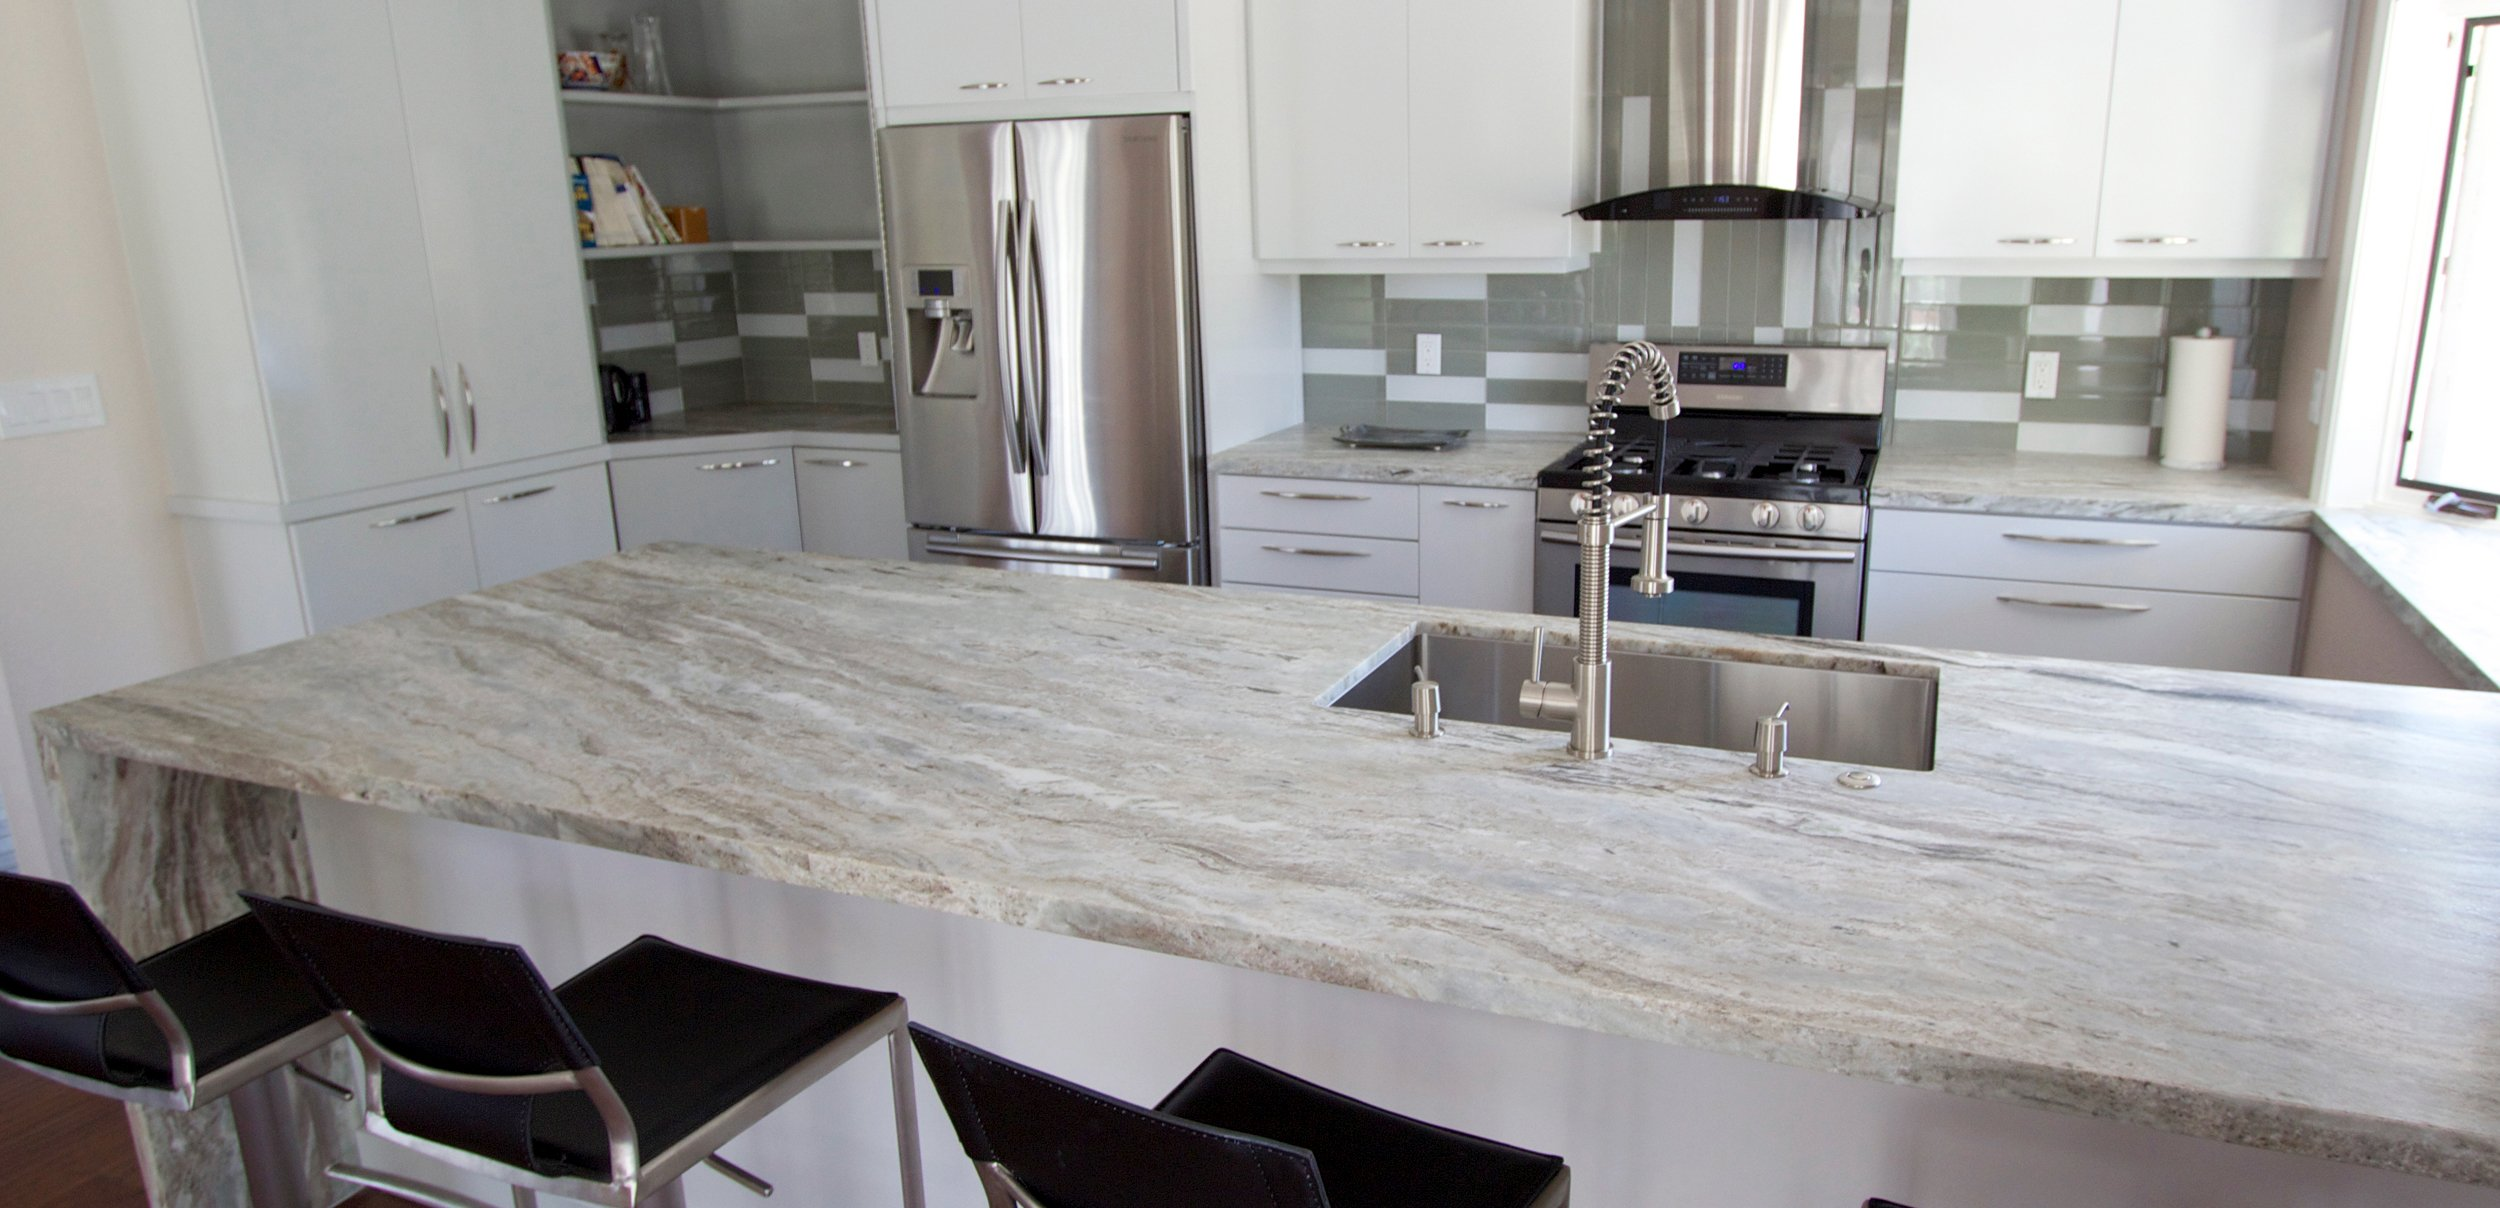 High Quality Serving San Diego County And North County Areas. We Do Kitchen Remodels ...